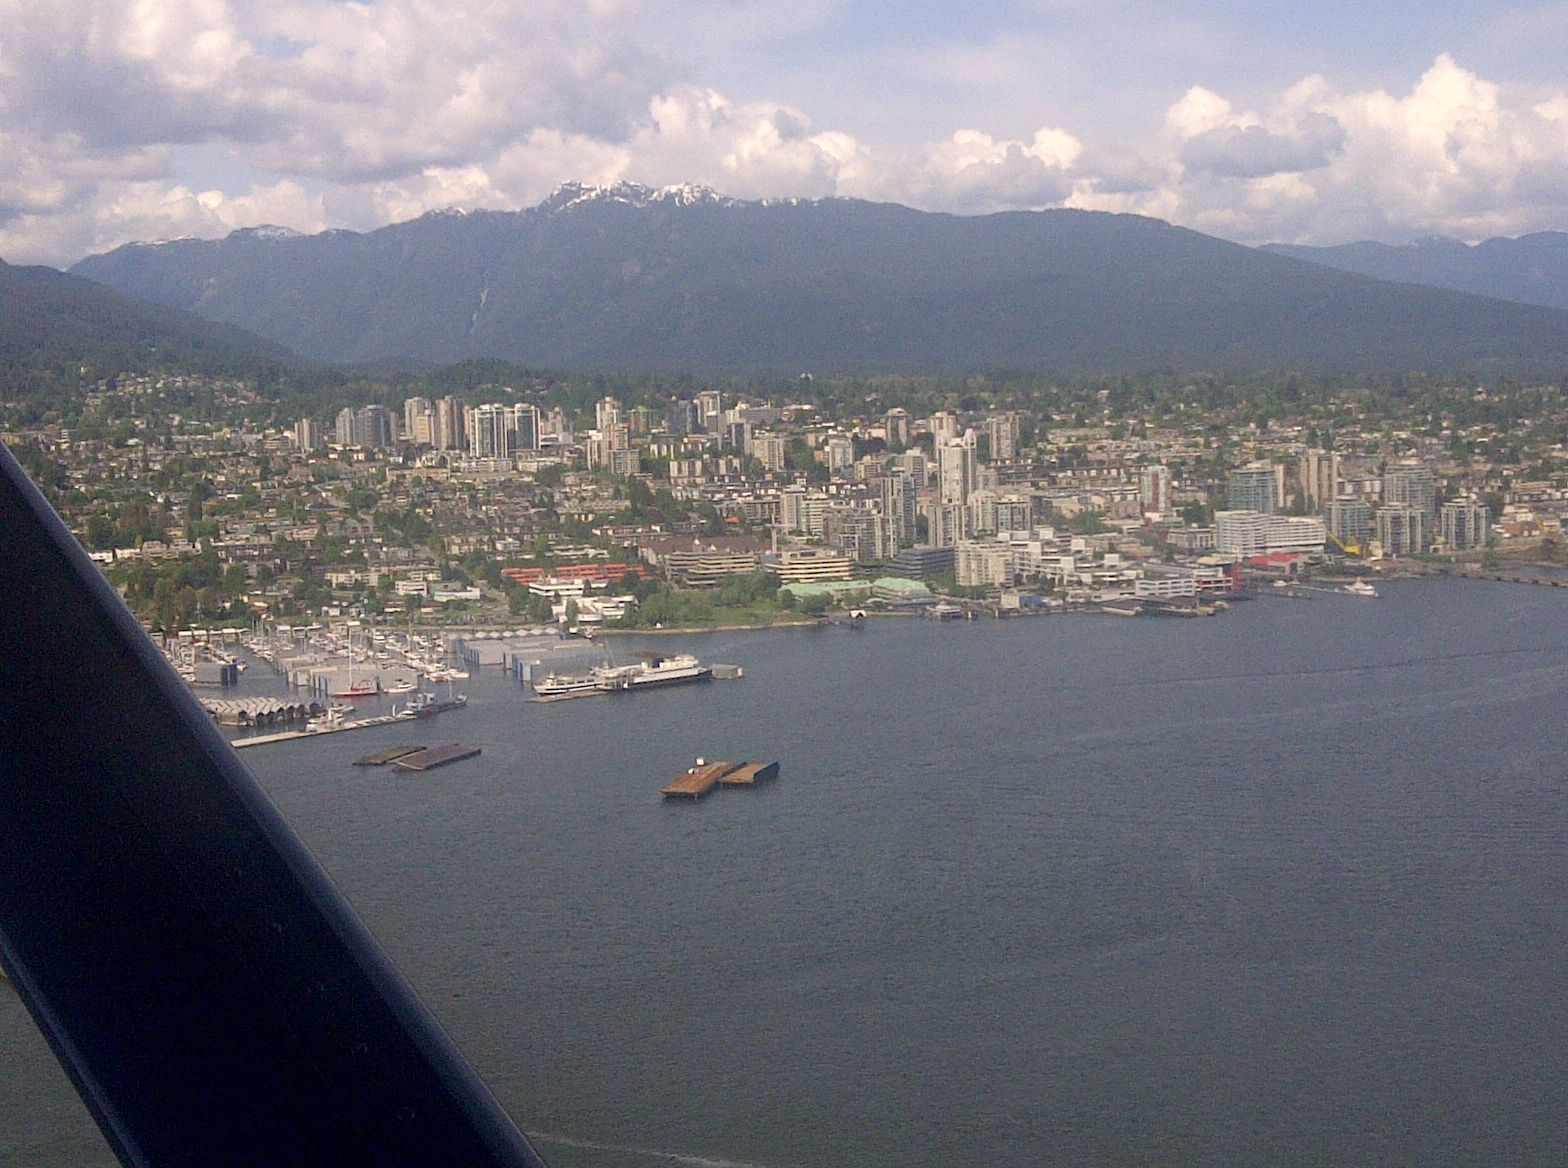 Metro Vancouver's North Shore – in the foreground, the City of North Vancouver urban centre